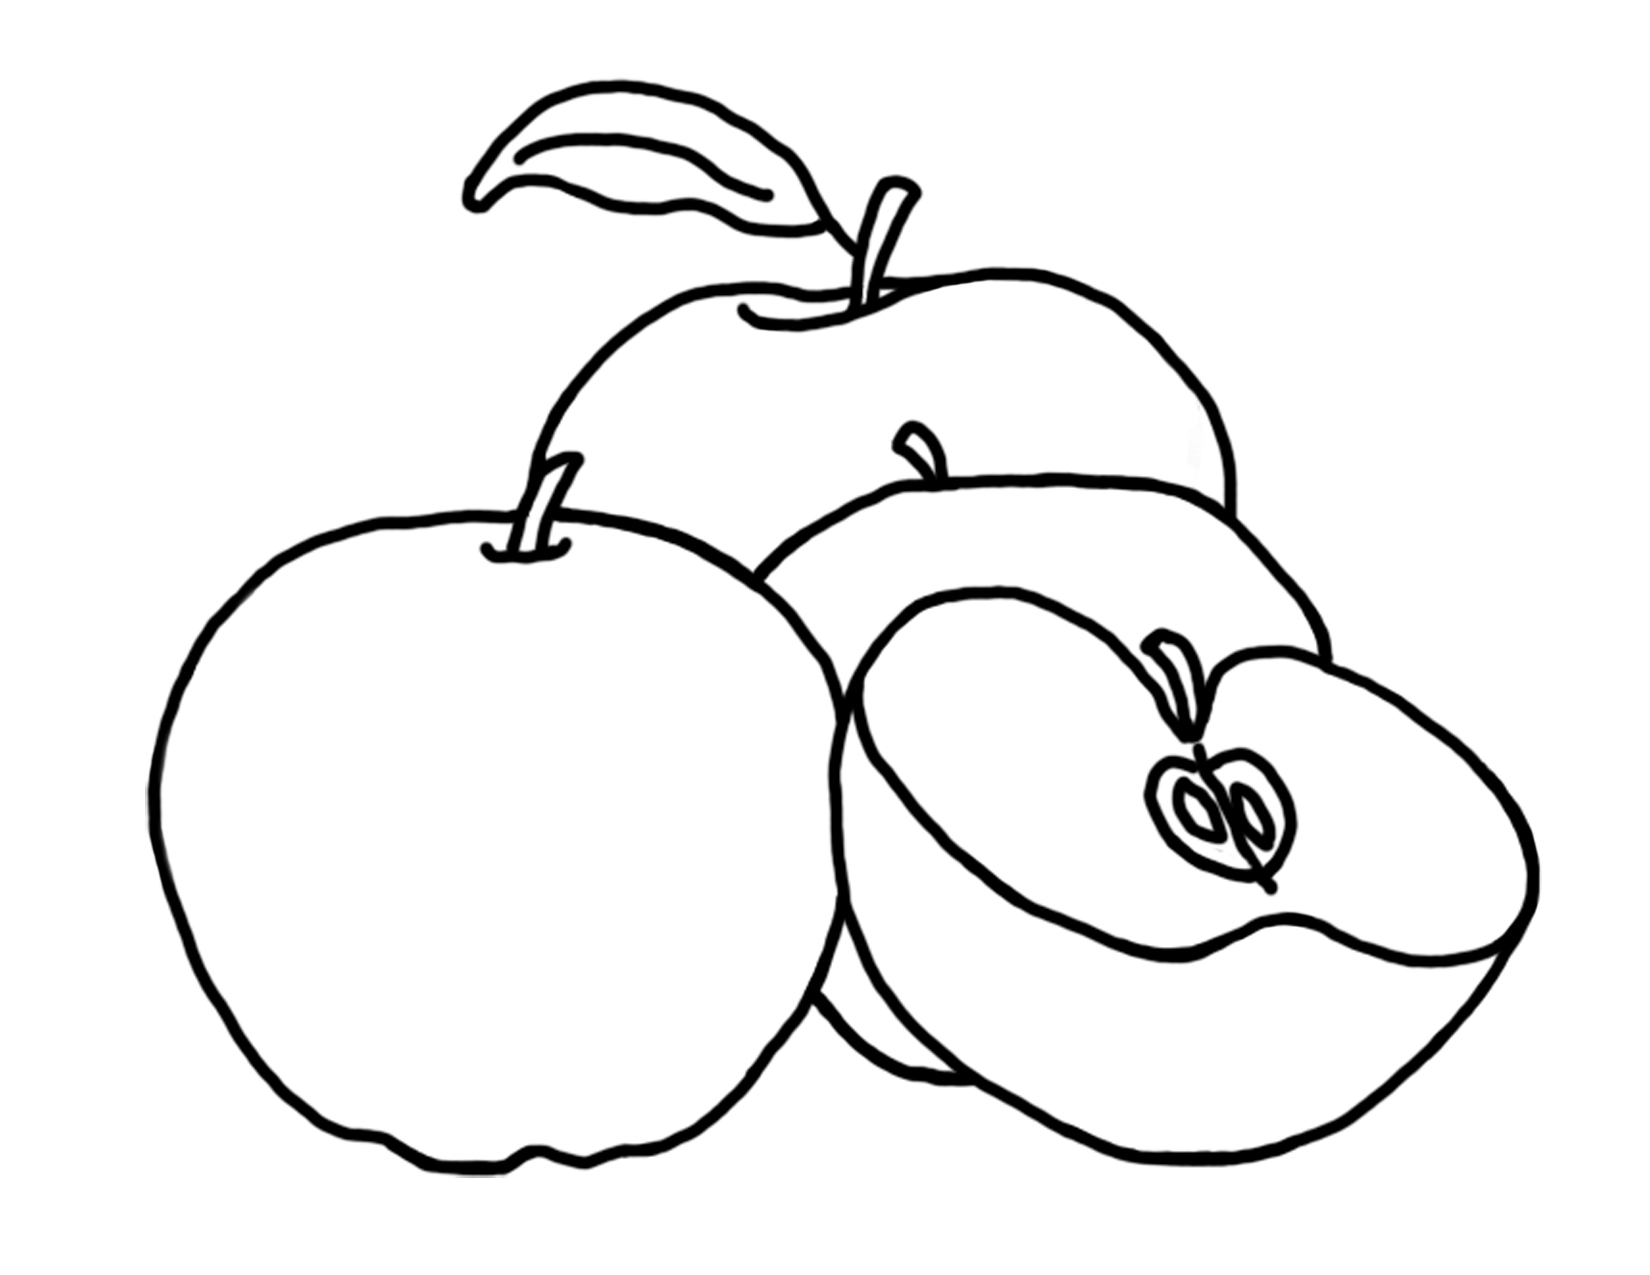 coloring apple page apple with leaf coloring page coloring sky apple page coloring